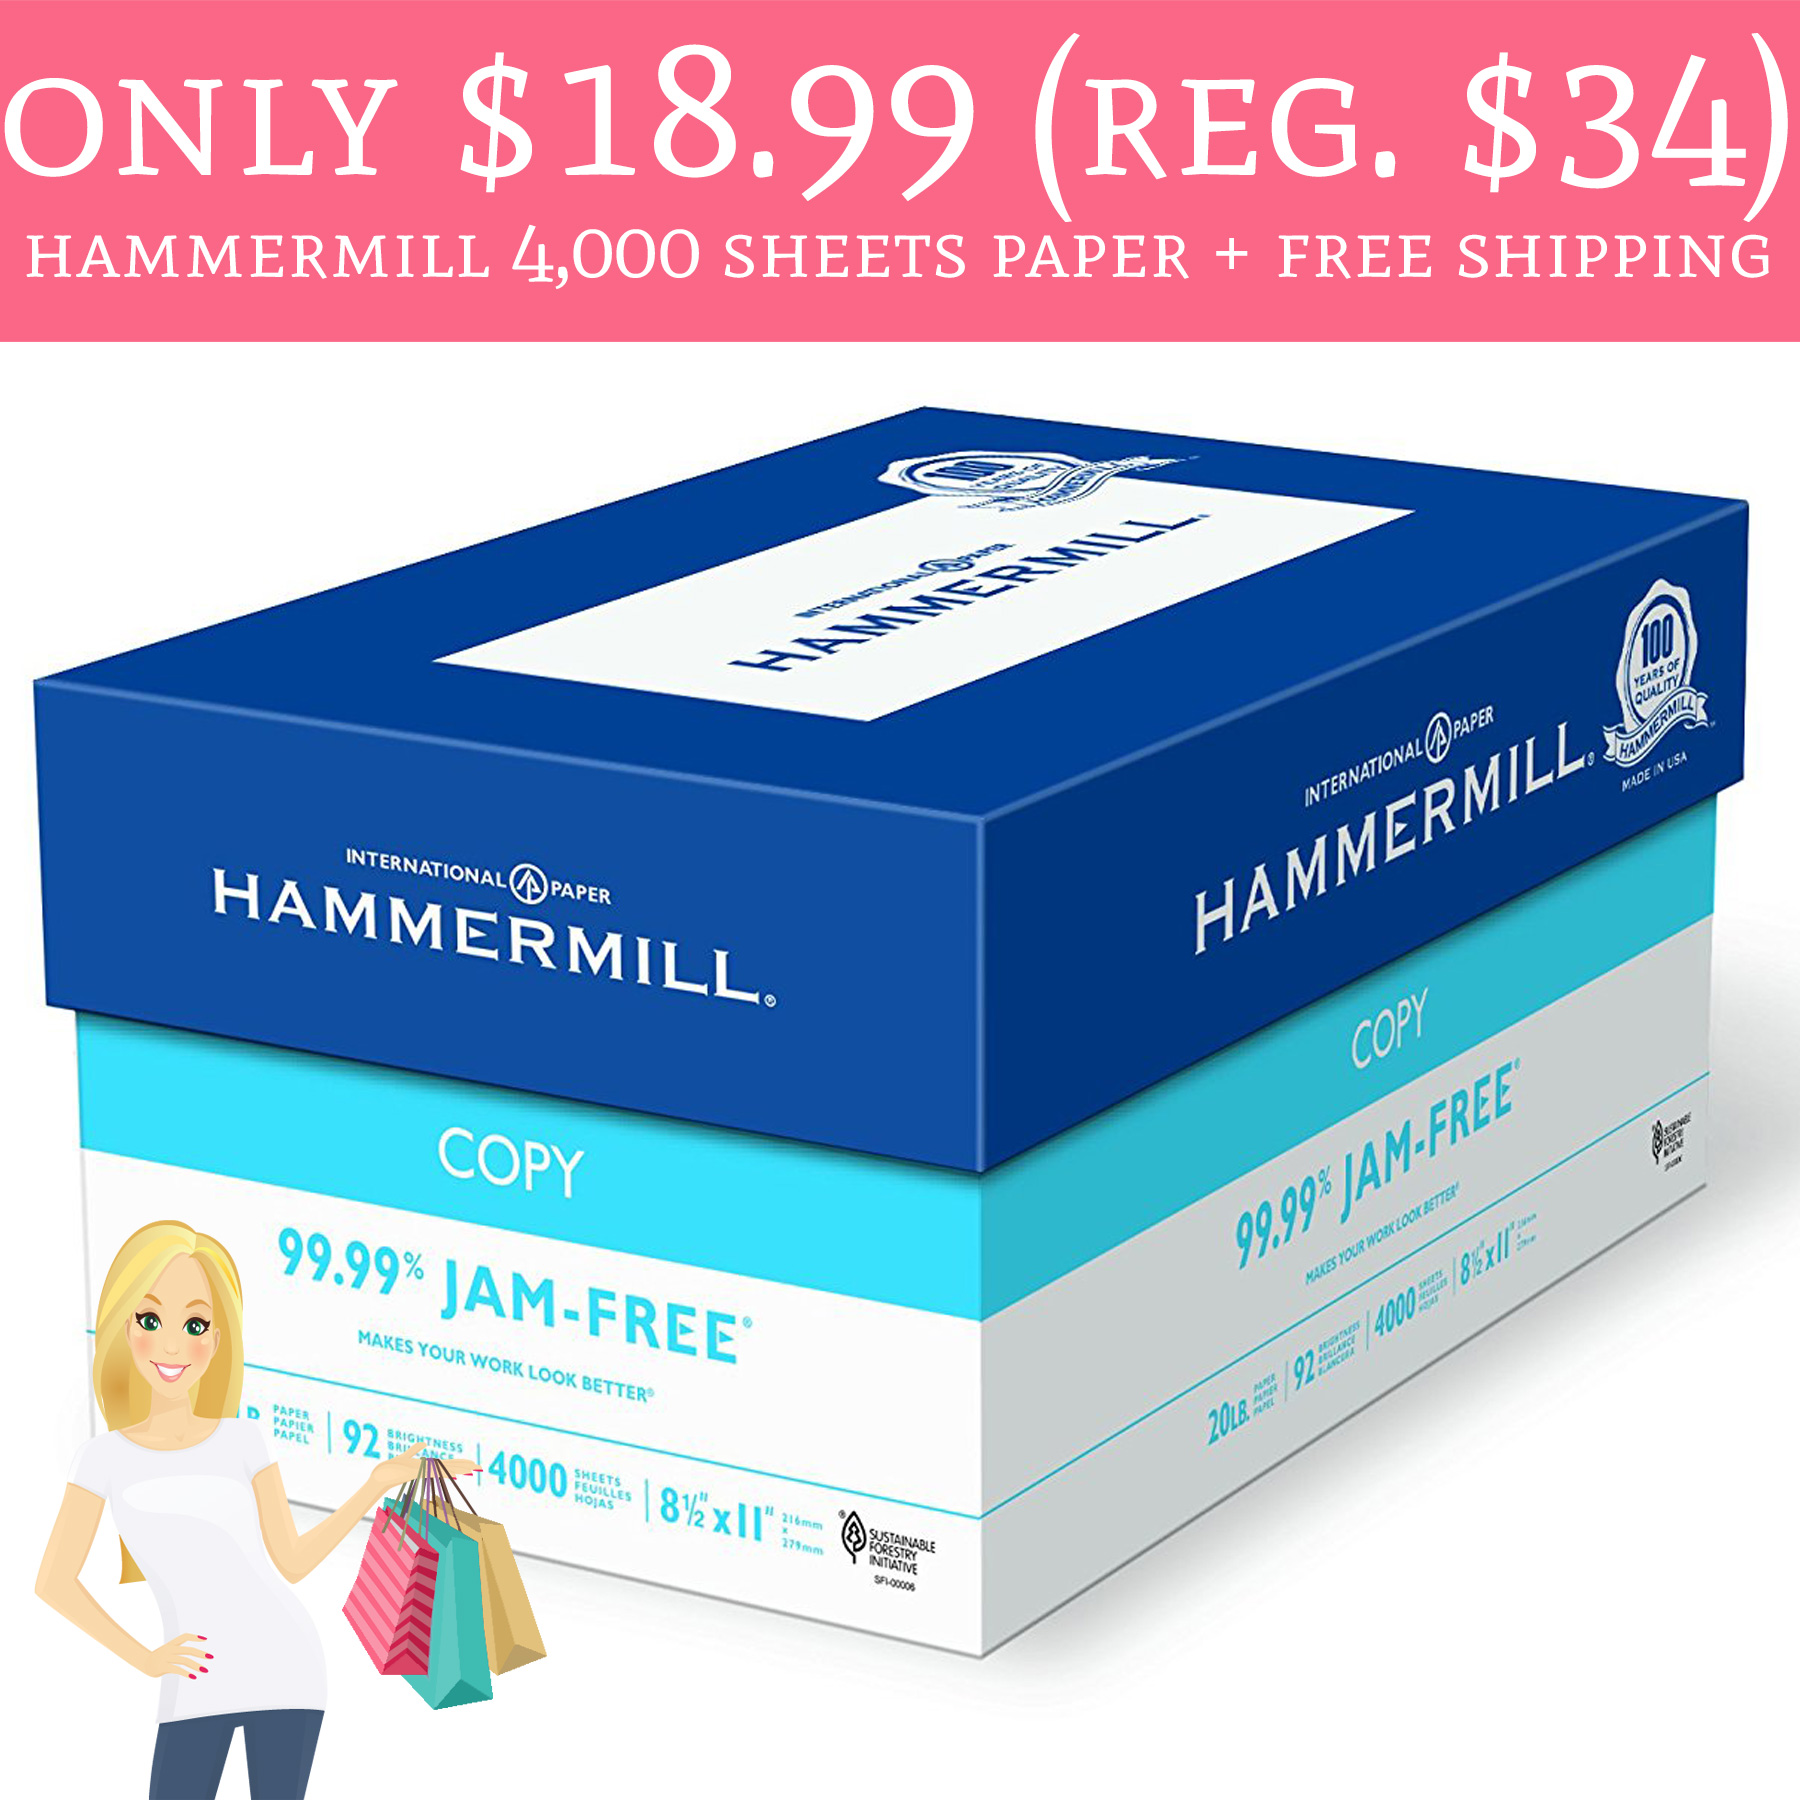 hammermill paper Find great deals on hammermill 28 pounds paper, including discounts on the hammermill 85 x 11 in copy paper.